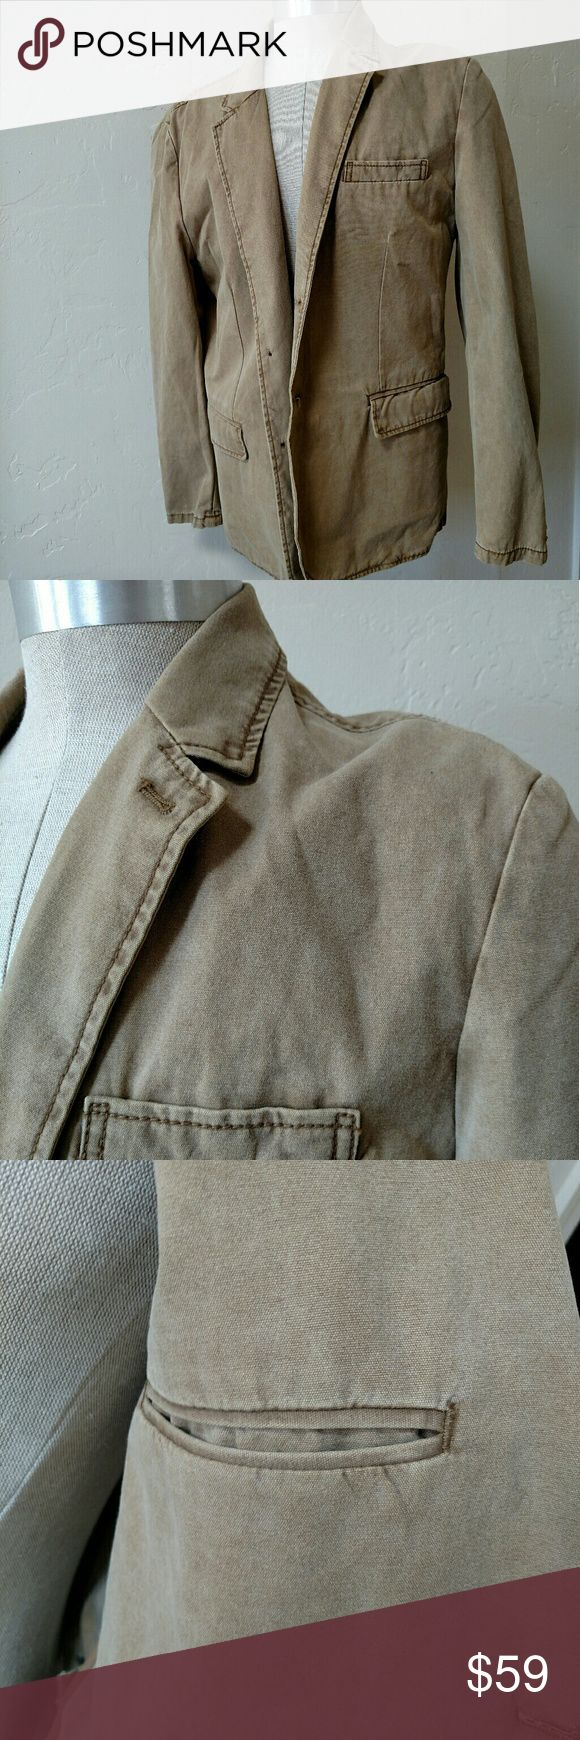 Gap khaki tan safari tan jacket coat Large Used but great condition safari jacket from Gap.  Looks rugged for the trails, just casual for the club.  Smoking club that is!  Tan color, pockets everything (or two outside and one inside if that's what I mean). GAP Jackets & Coats Military & Field